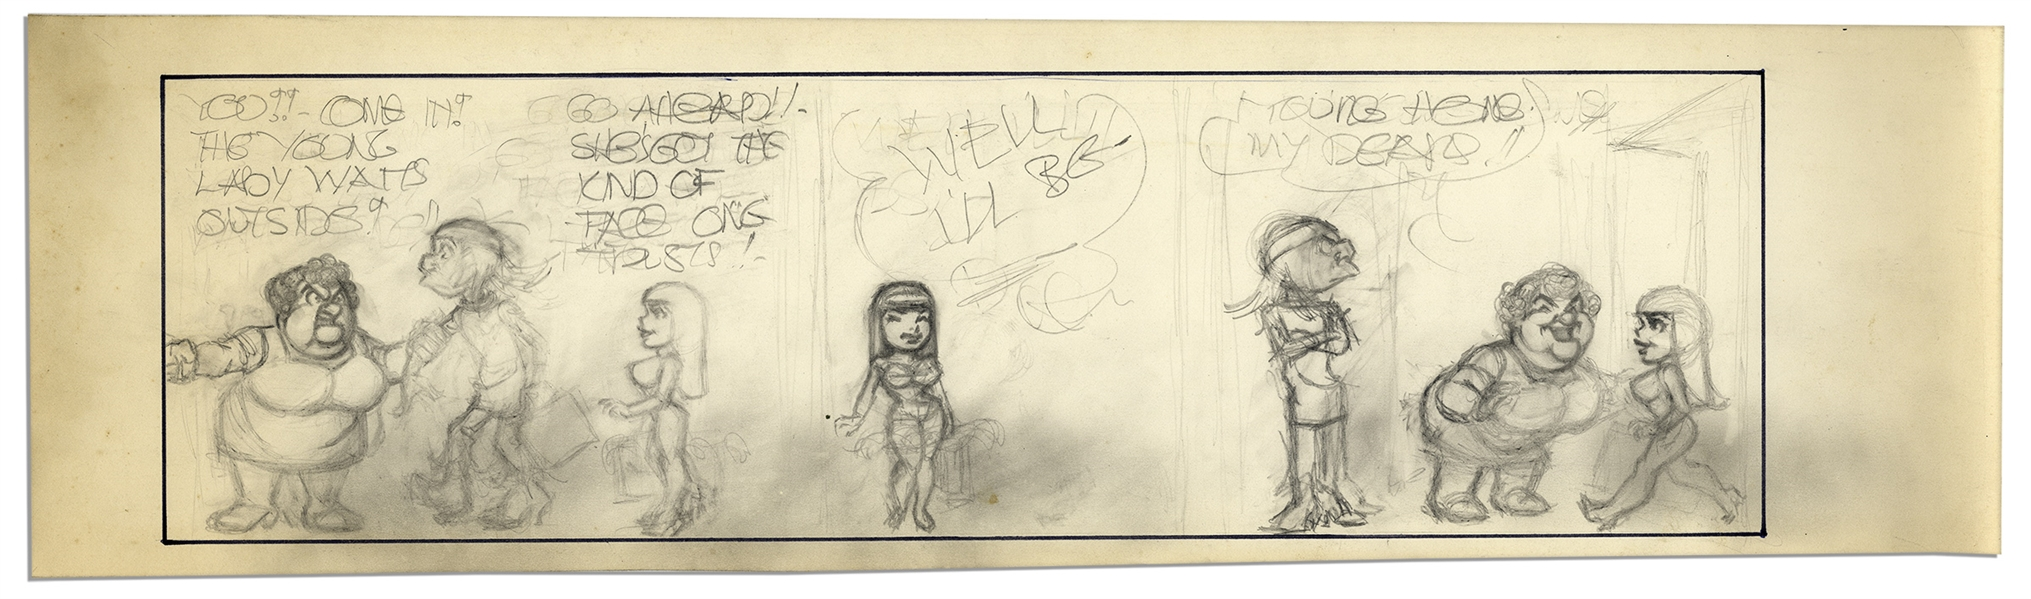 ''Li'l Abner'' Unfinished Comic Strip by Al Capp in Pencil -- Undated -- 23'' x 6.5'' -- Very Good Condition -- From the Al Capp Estate